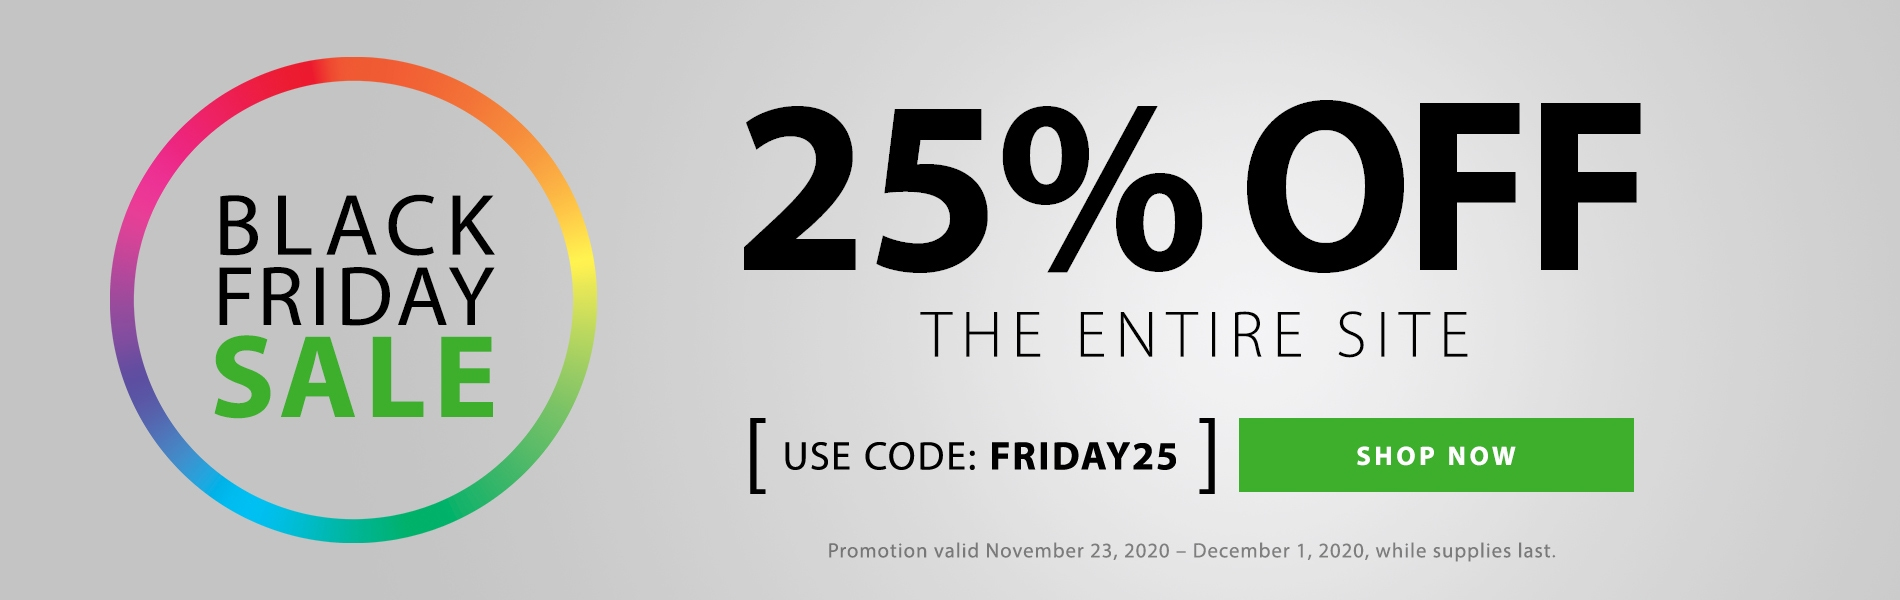 Black Friday Sale! Take 25% OFF Sitewide. Use Code: FRIDAY25. Shop Now!